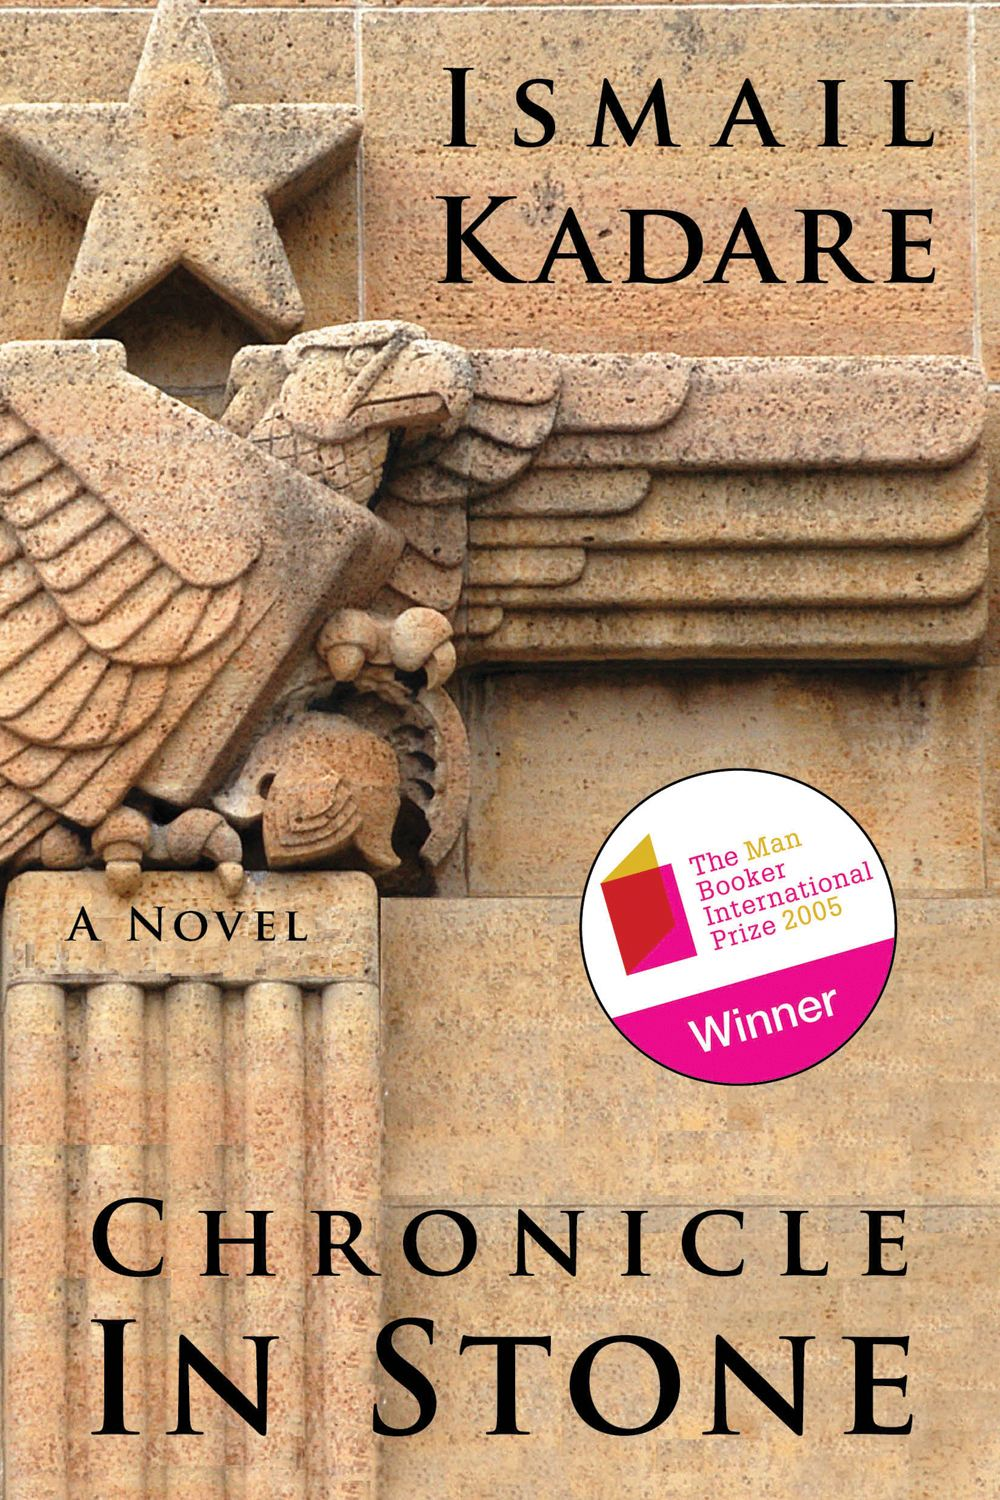 Chronicle in Stone: A Novel